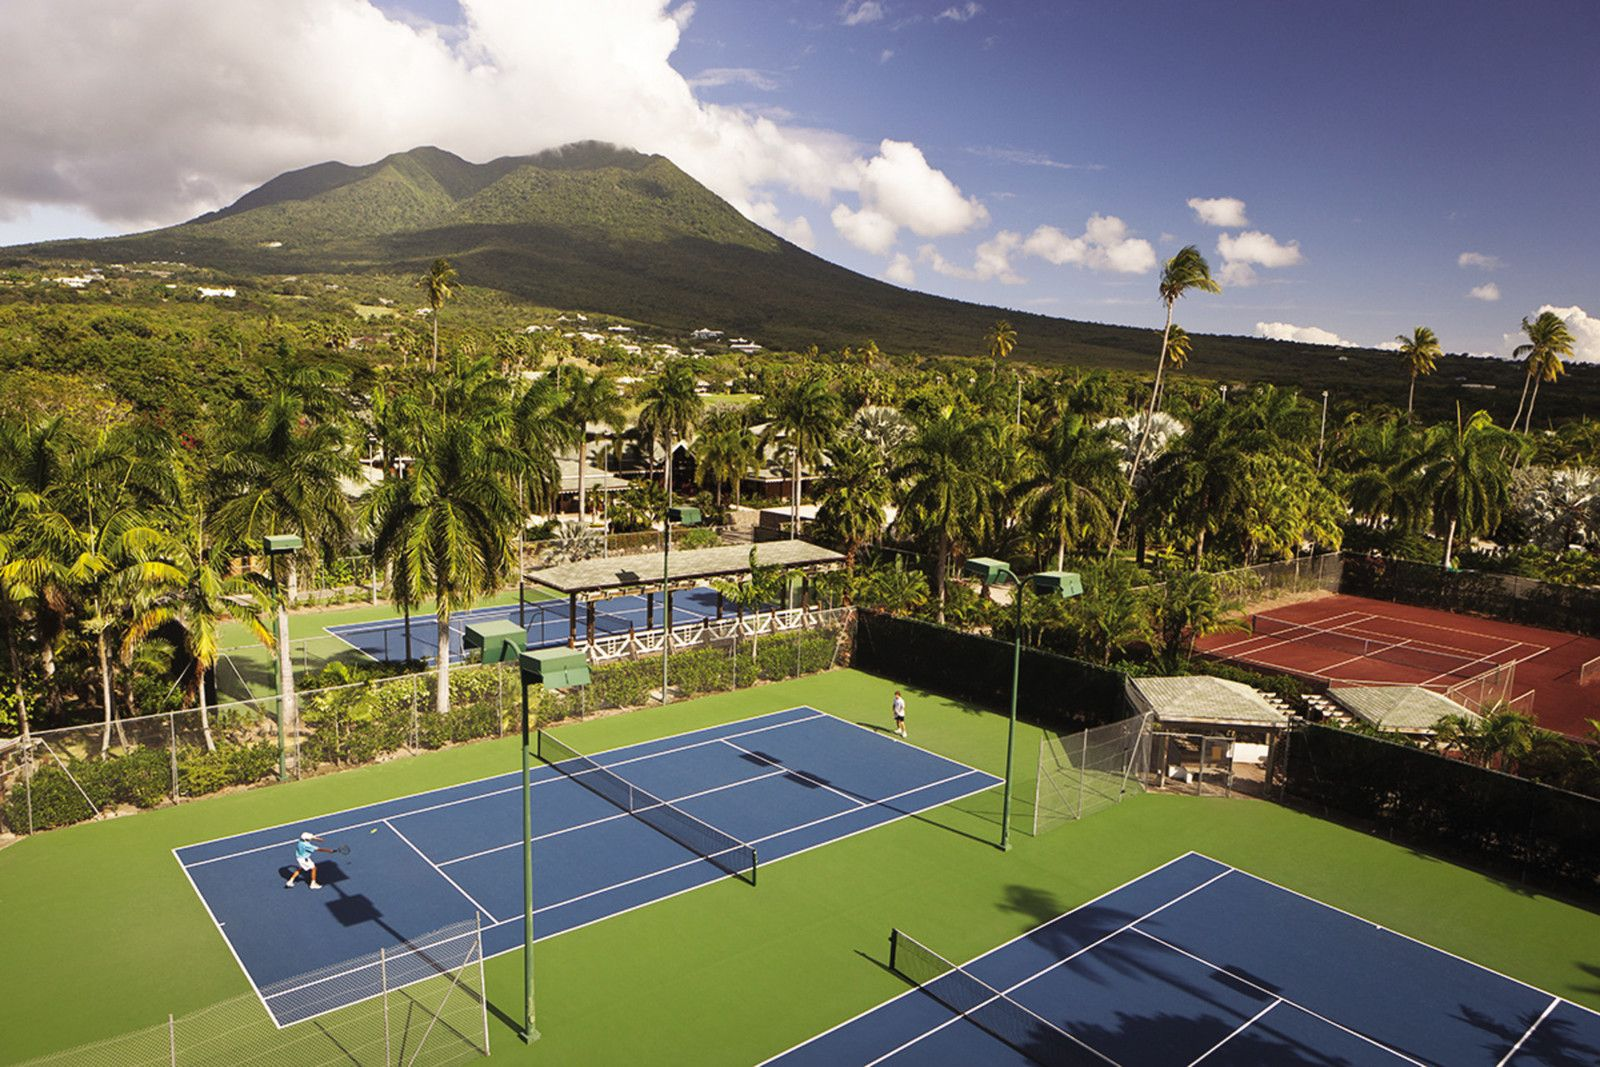 tennis-tourist-four-seasons-nevis-outdoor-courts-courtesy-four-seasons